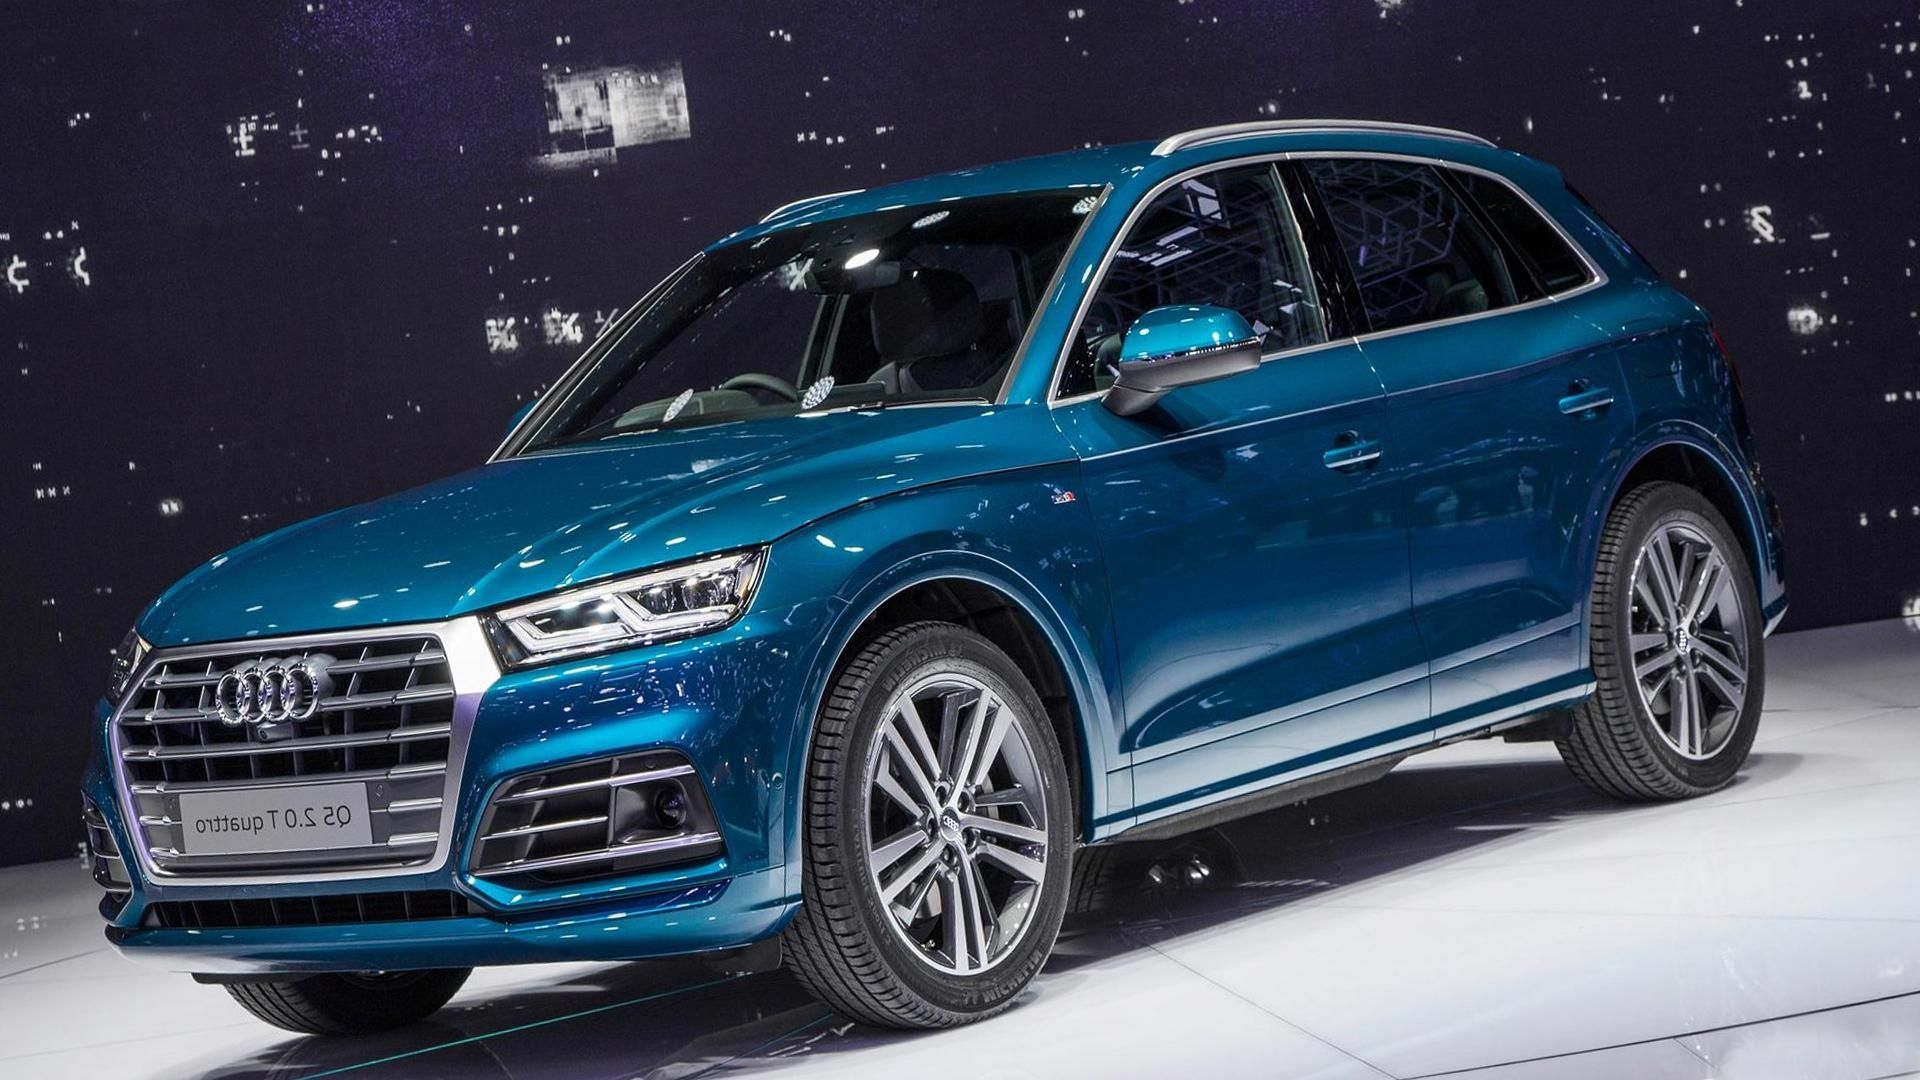 2019 Audi Q5 Price Everything Pinterest Audi Q3 And Cars Pertaining To 2019 Audi Q5 Concept Redesign And Review Rennwagen Bmw X3 Auto Bild